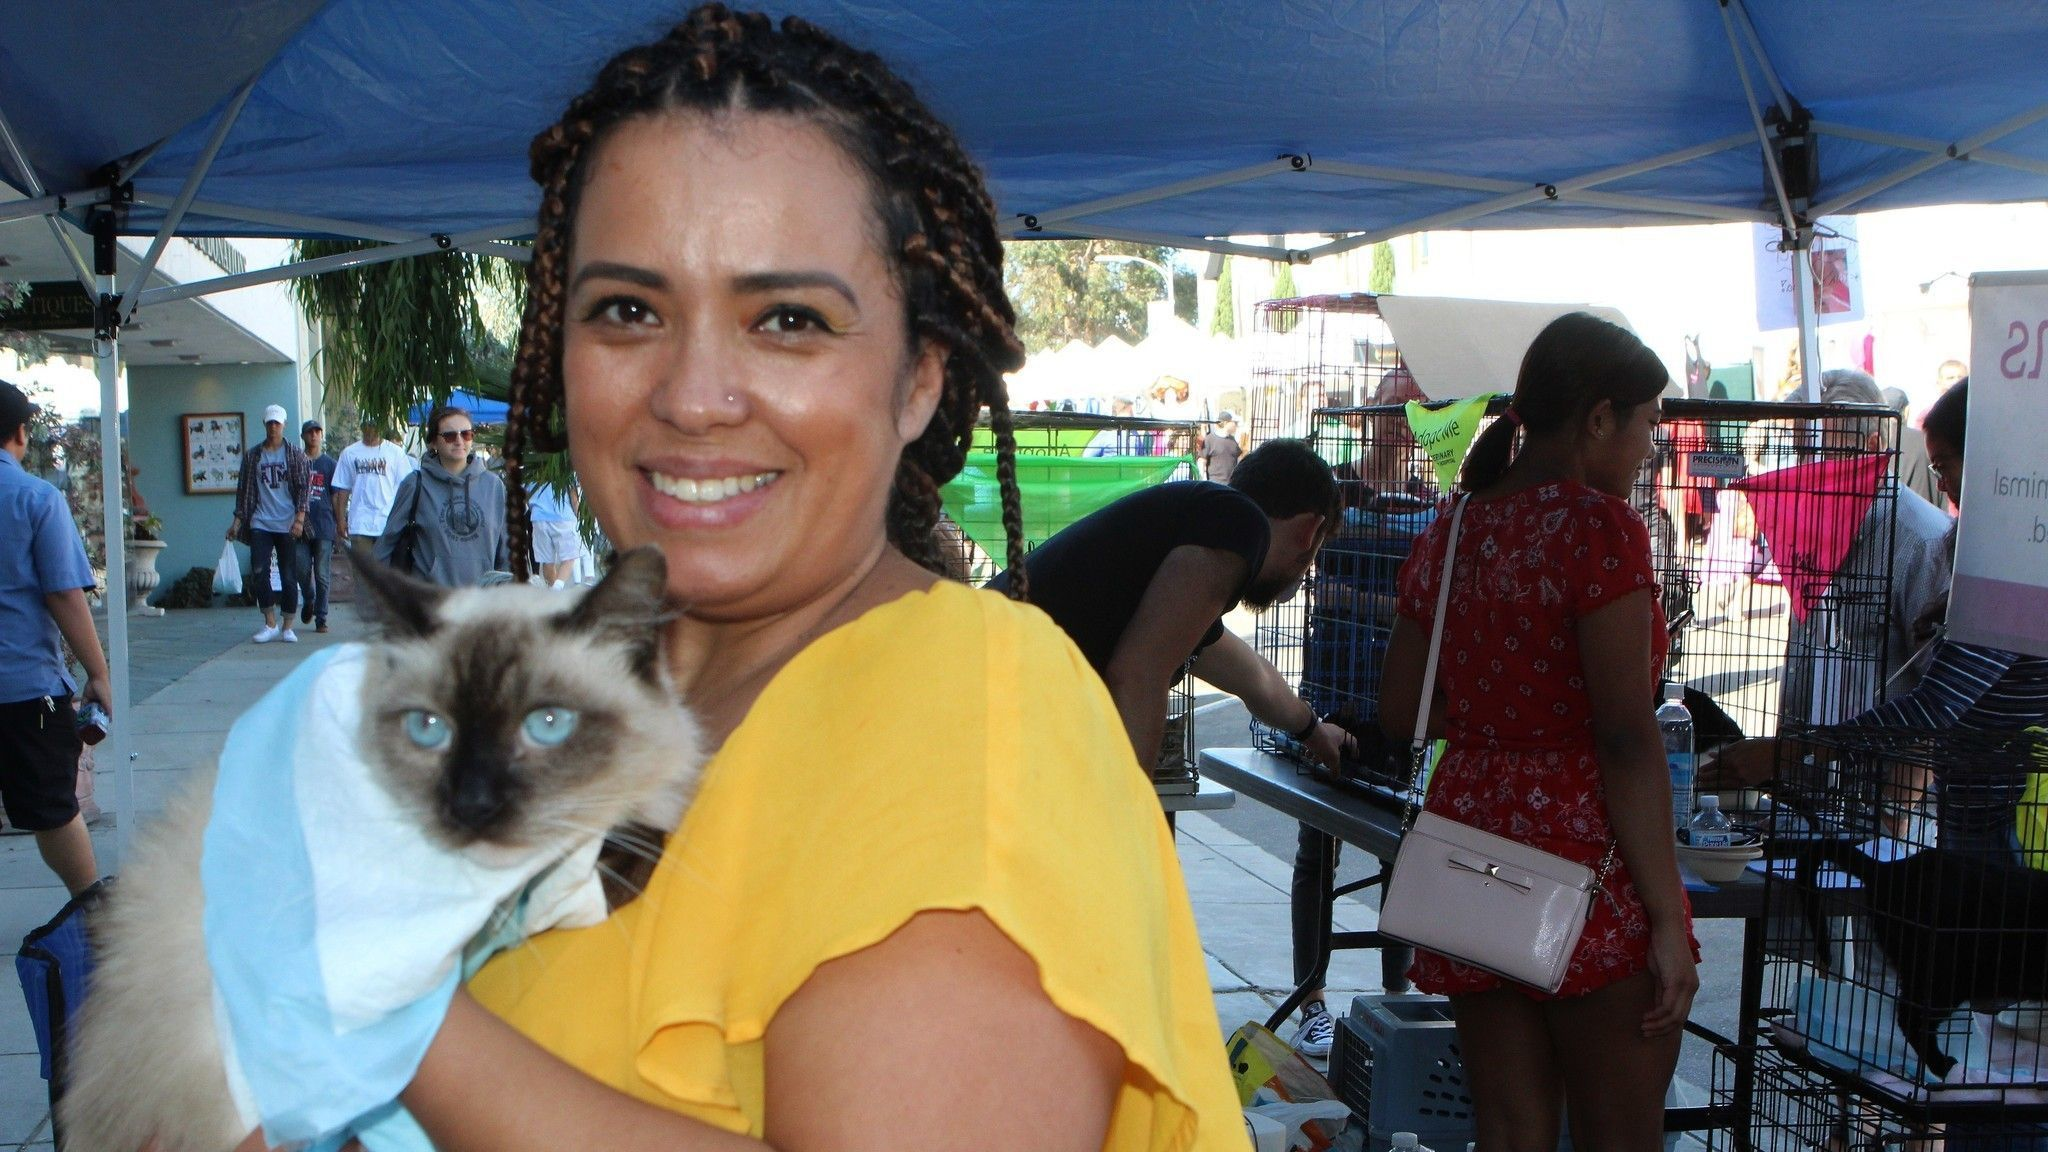 Decire Breidenbach of San Marcos adopts one of about 50 dogs and cats who found new homes during the festival's second adoption event.